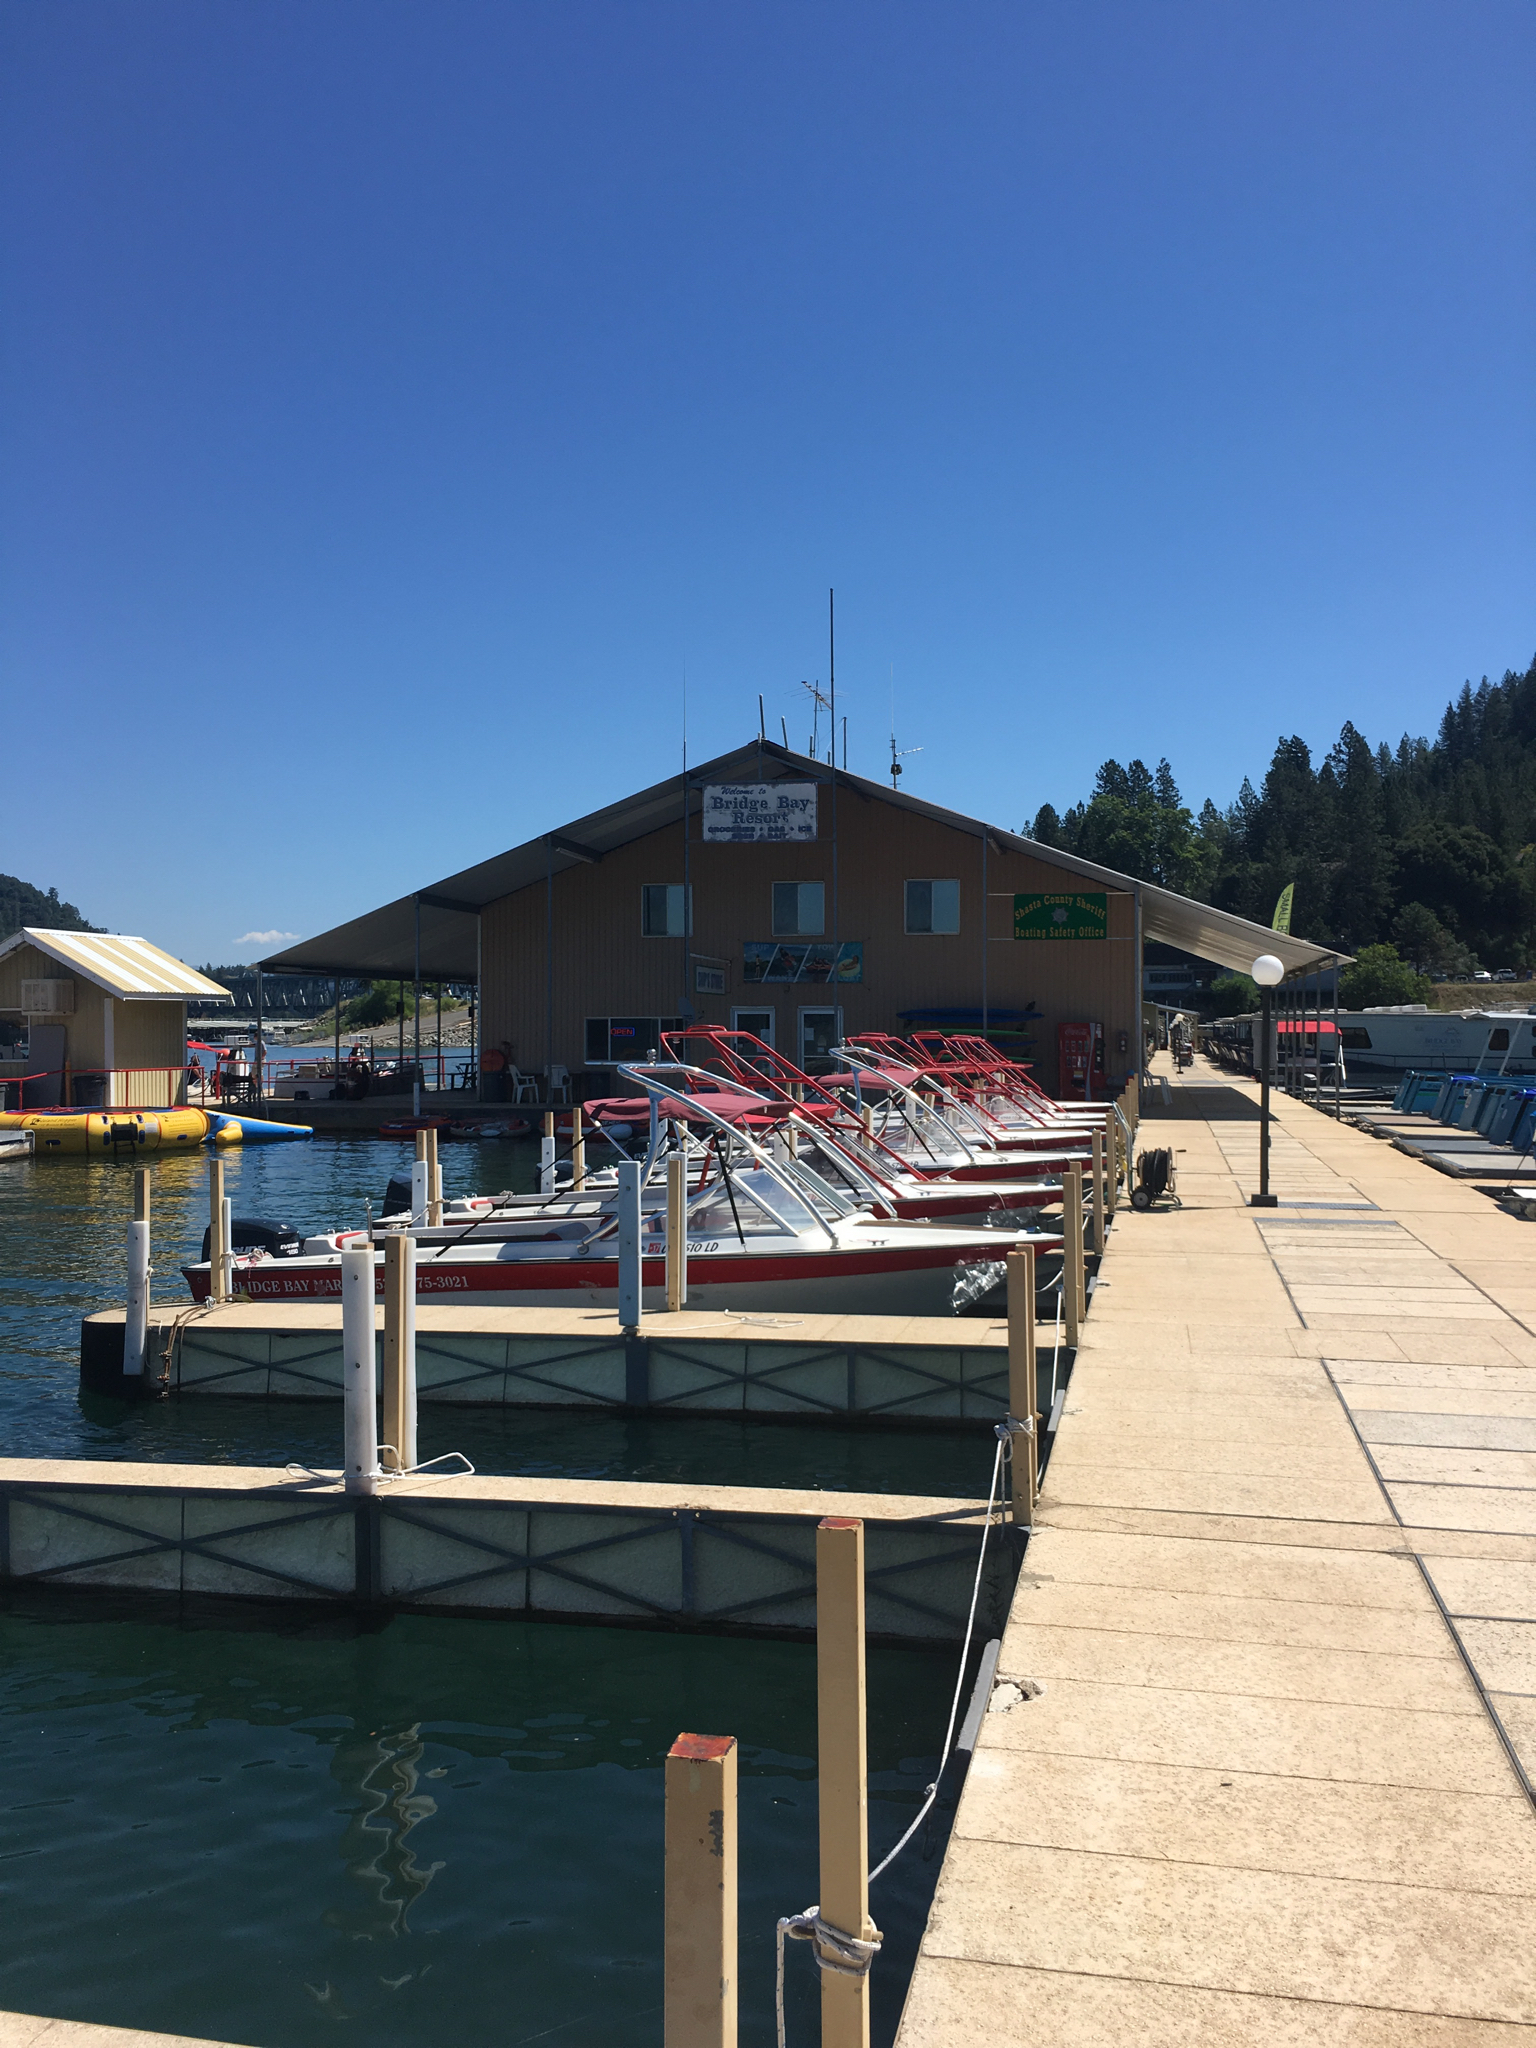 Best of mount shasta ca things to do nearby for Shasta motors redding california